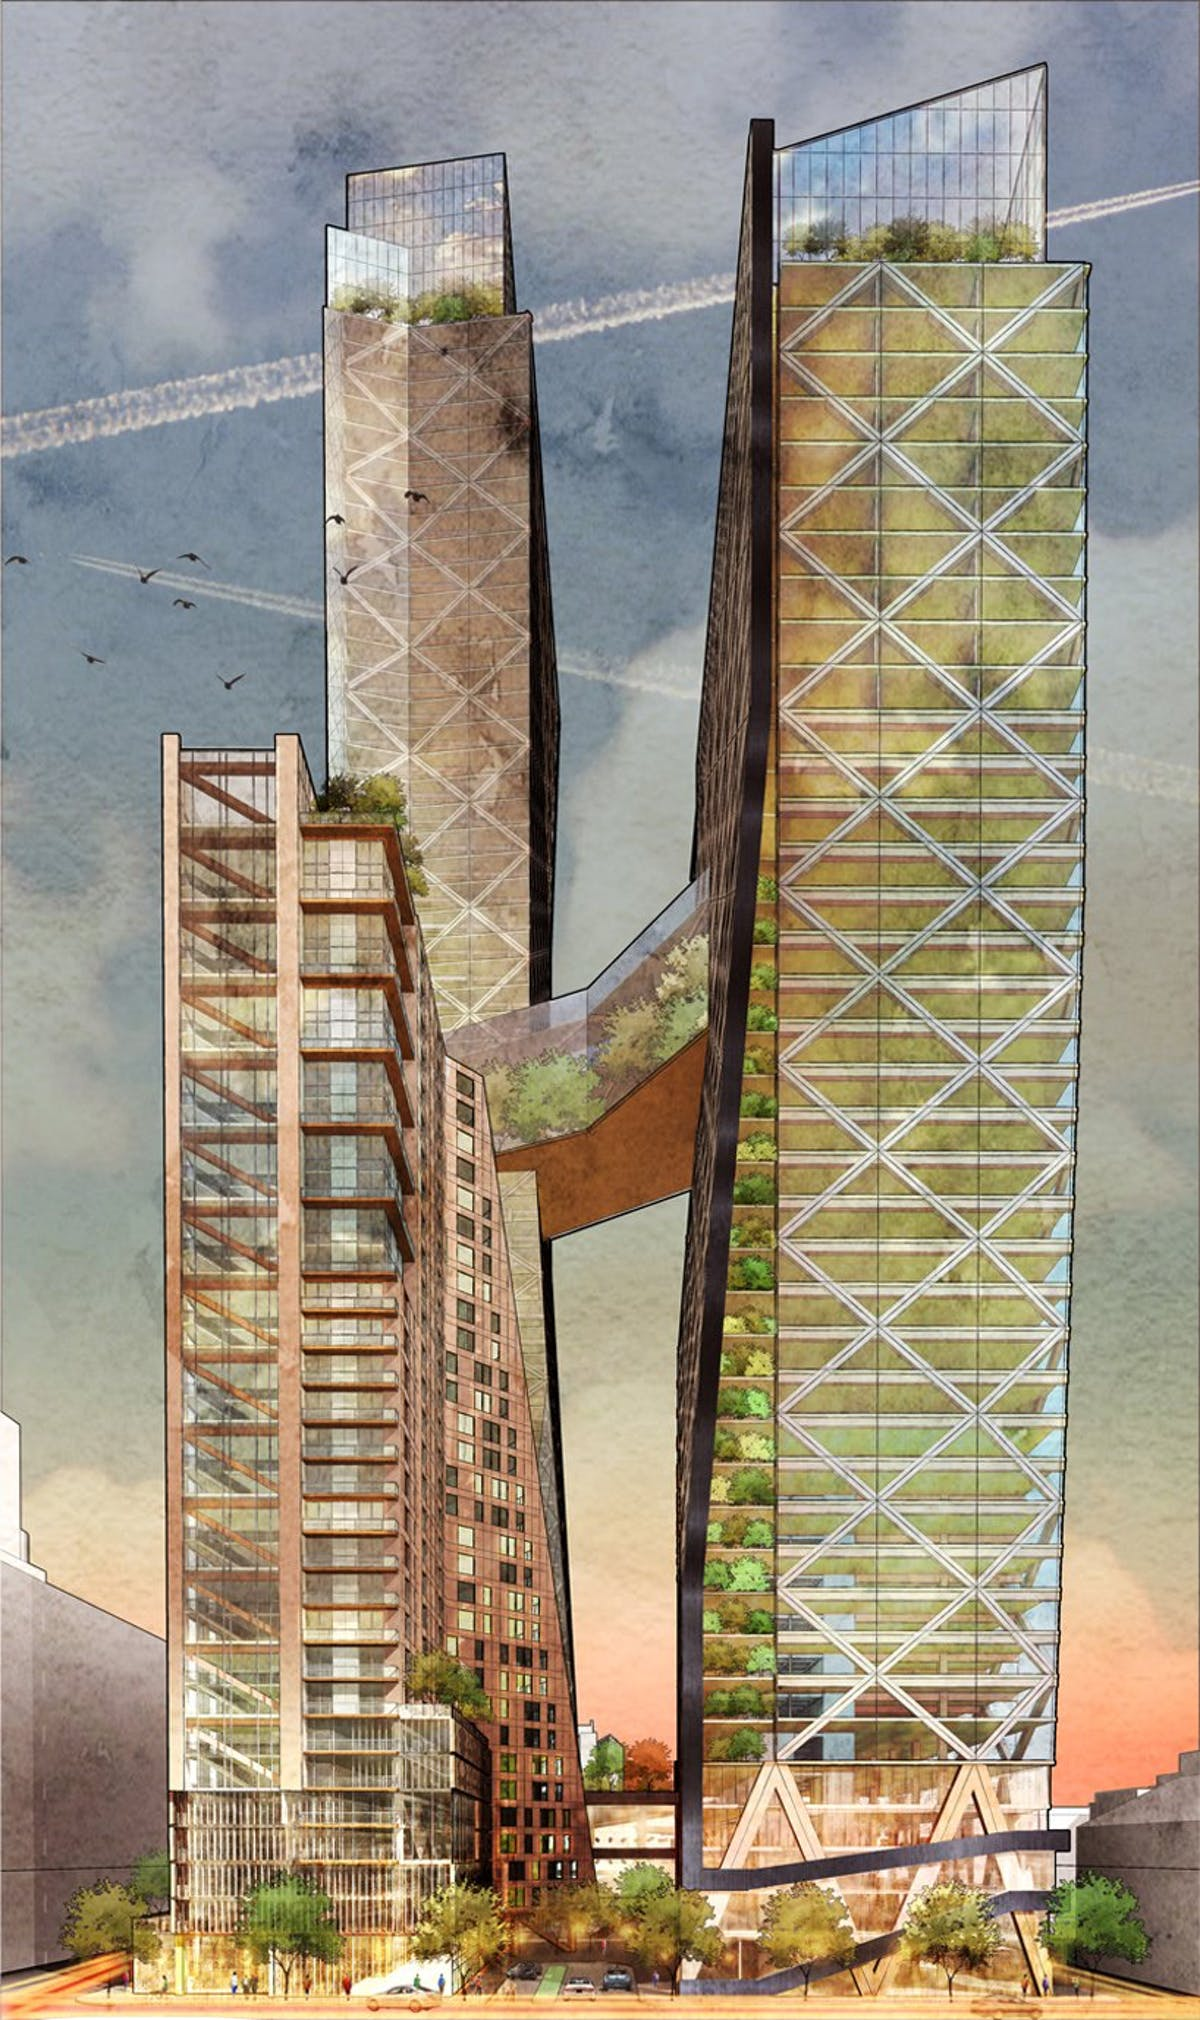 Hickok Cole Architects propose a group of timber skyscrapers for Philadelphia